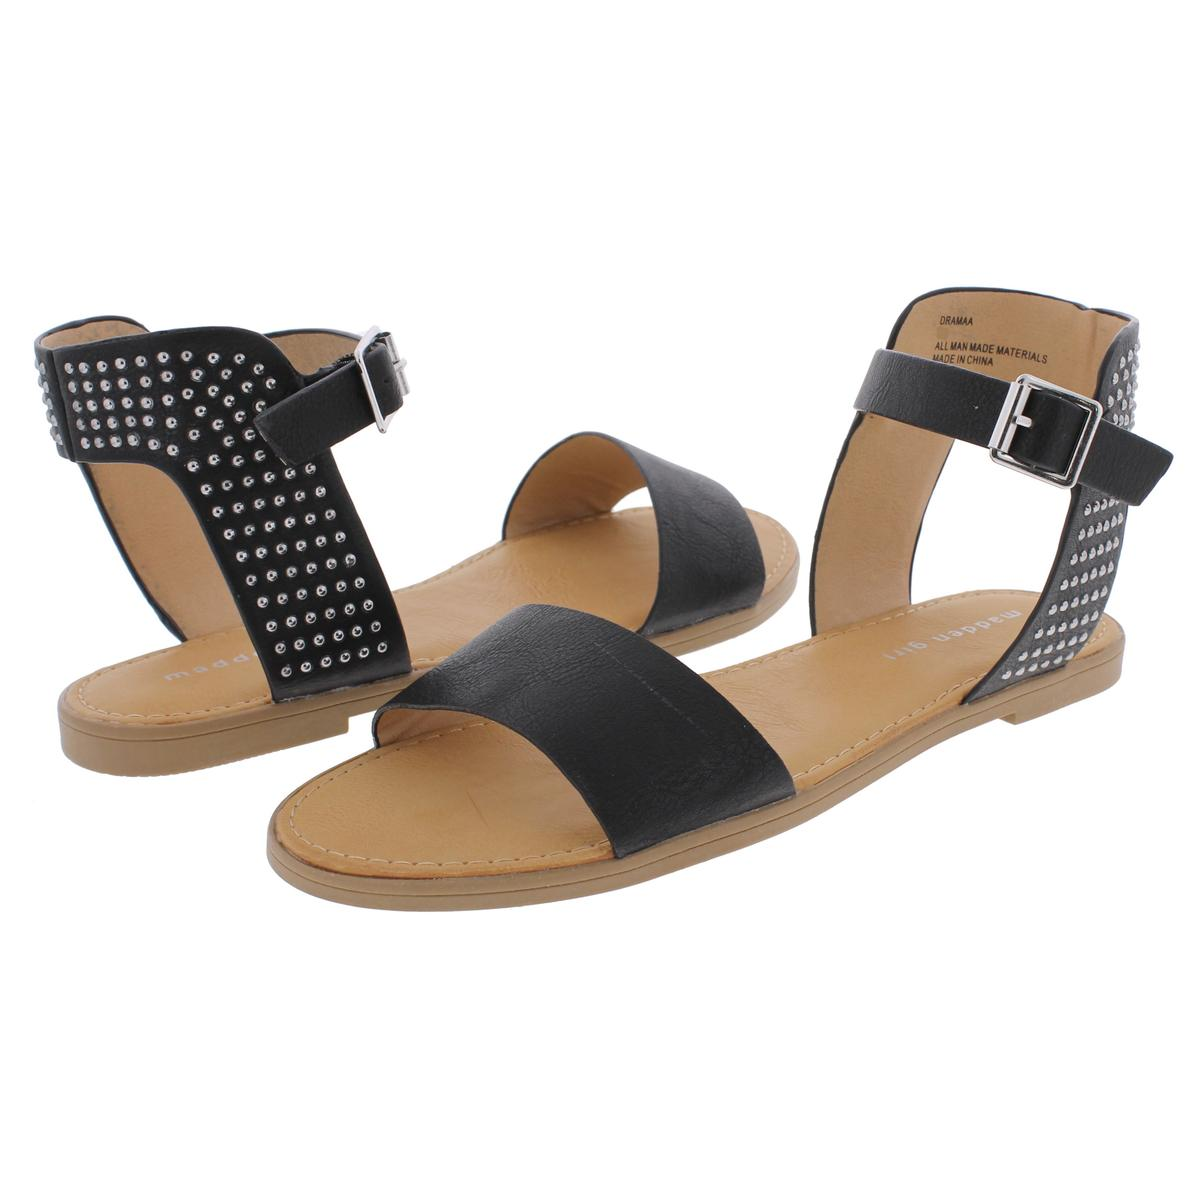 Madden-Girl-by-Steve-Madden-Womens-Drama-Ankle-Flat-Sandals-Shoes-BHFO-9428 thumbnail 7